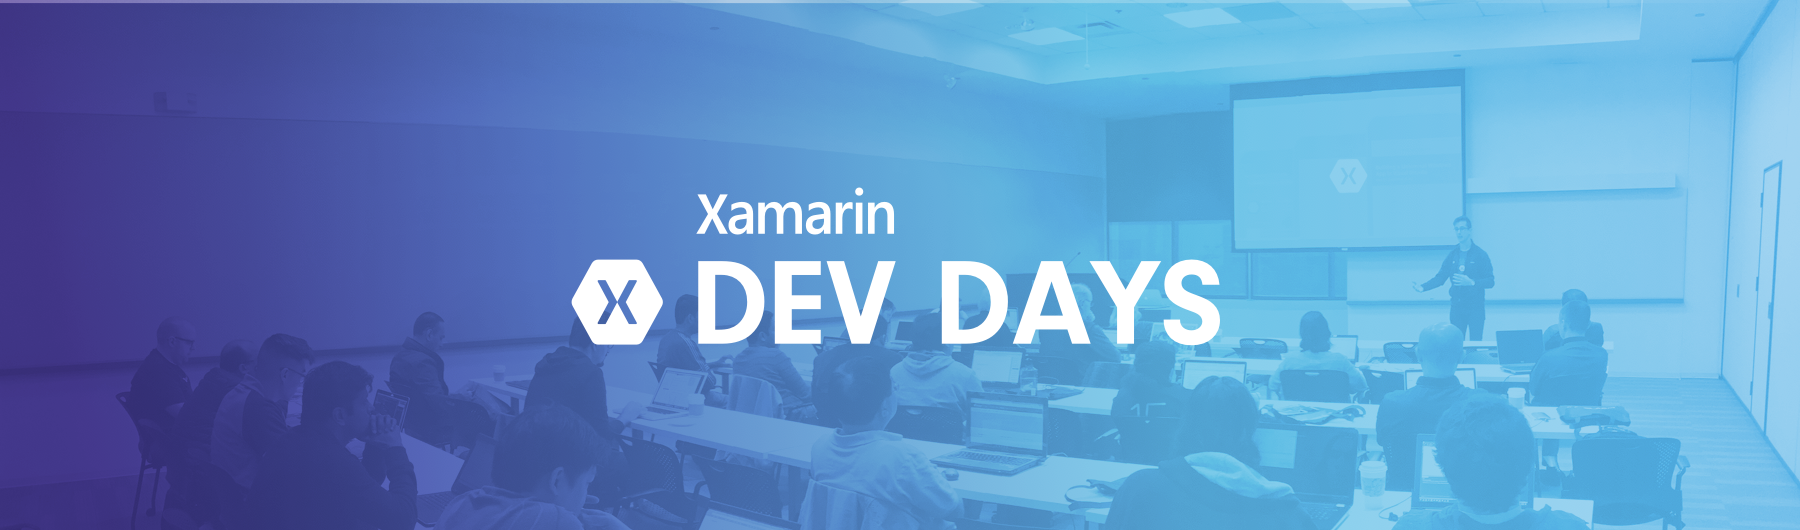 Xamarin Dev Days - Gent